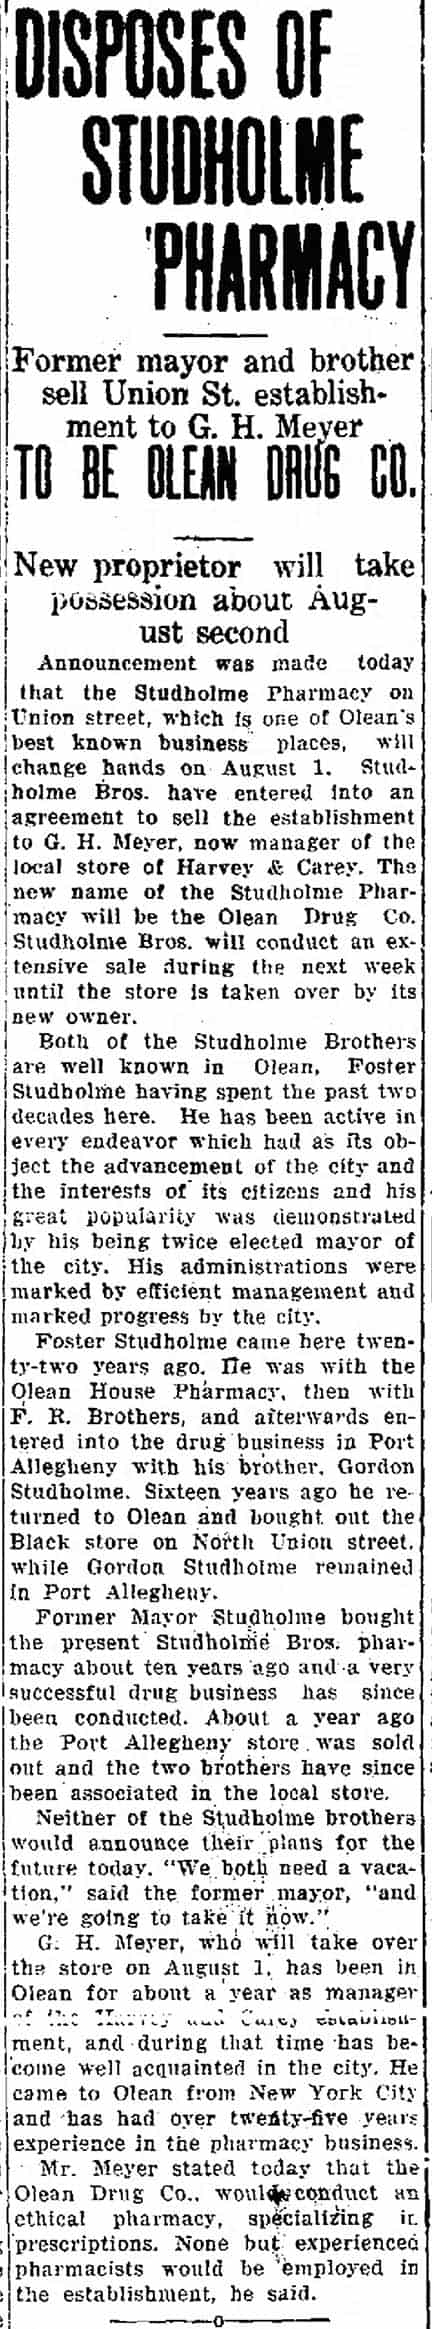 DisposesStudholme_TimesHeraldSat__Jul_24__1920